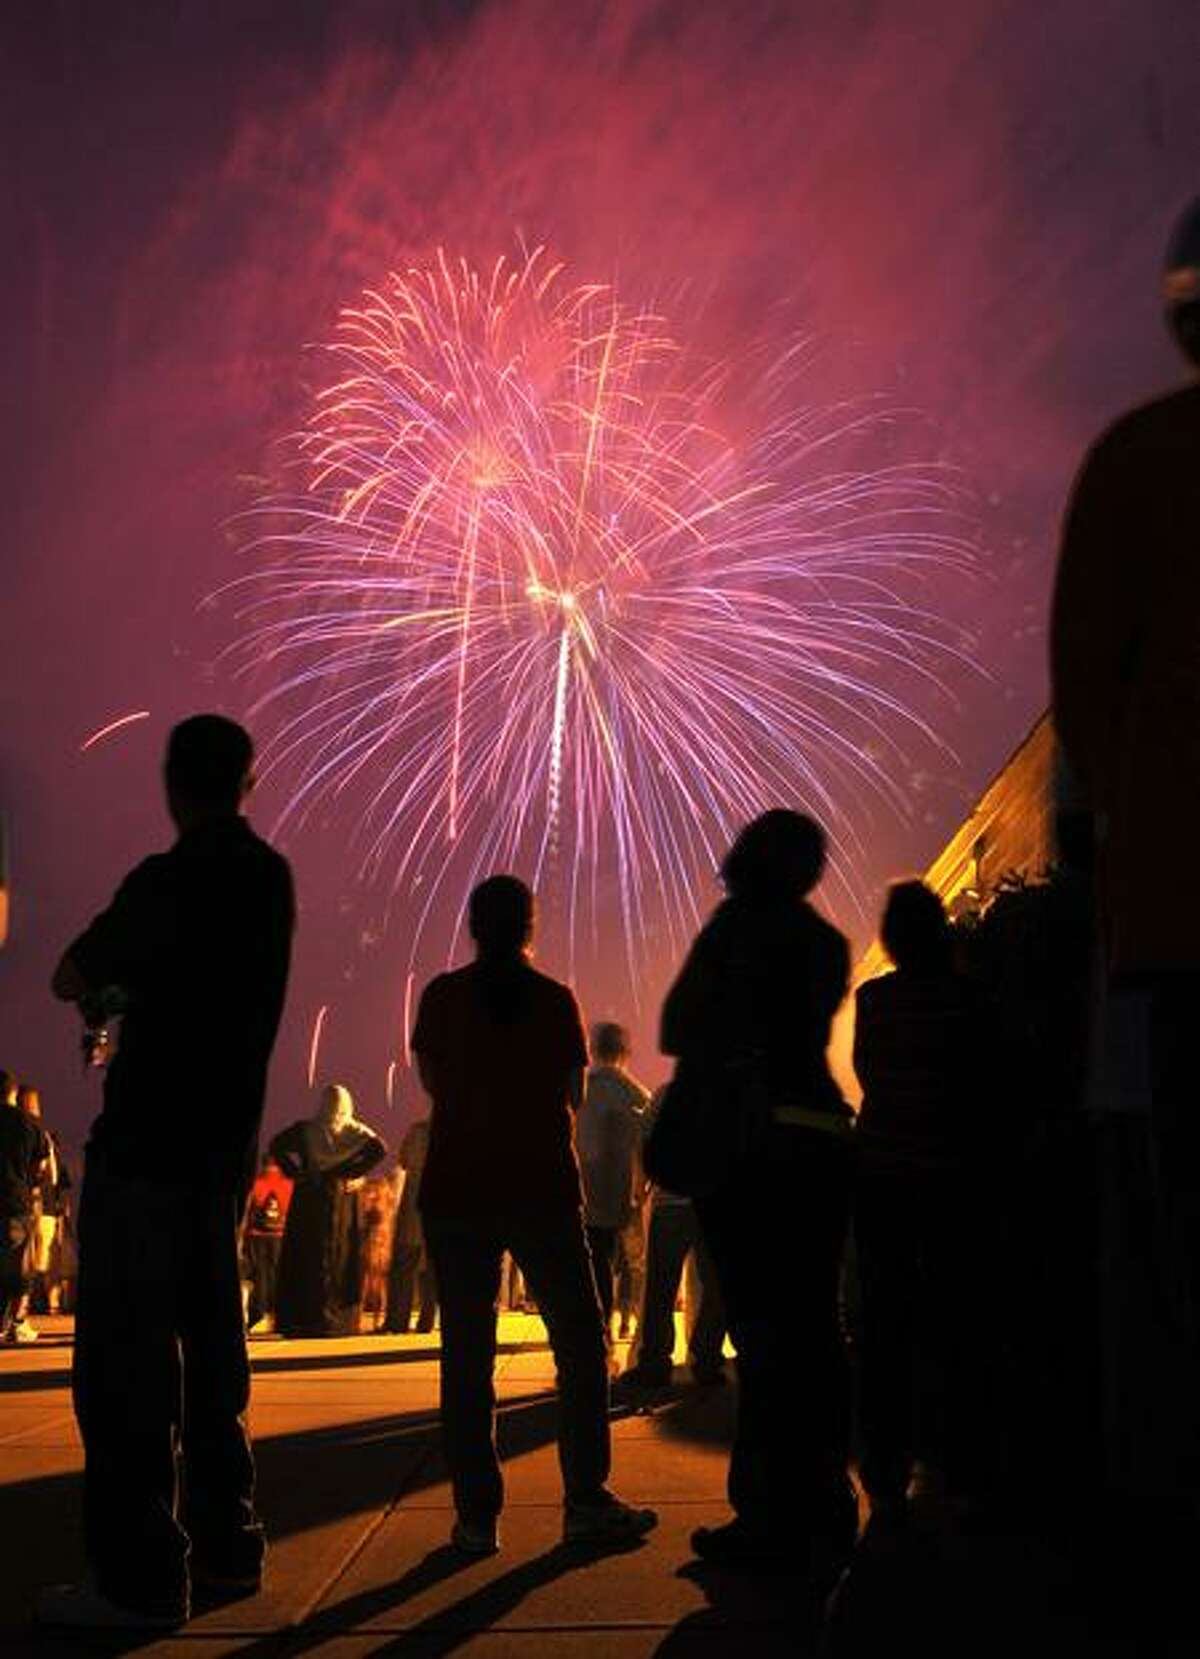 Thousands gathered to watch the West Haven fireworks along the boardwalk near Savin Rock in West Haven on Sunday night. (Peter Casolino/Register)